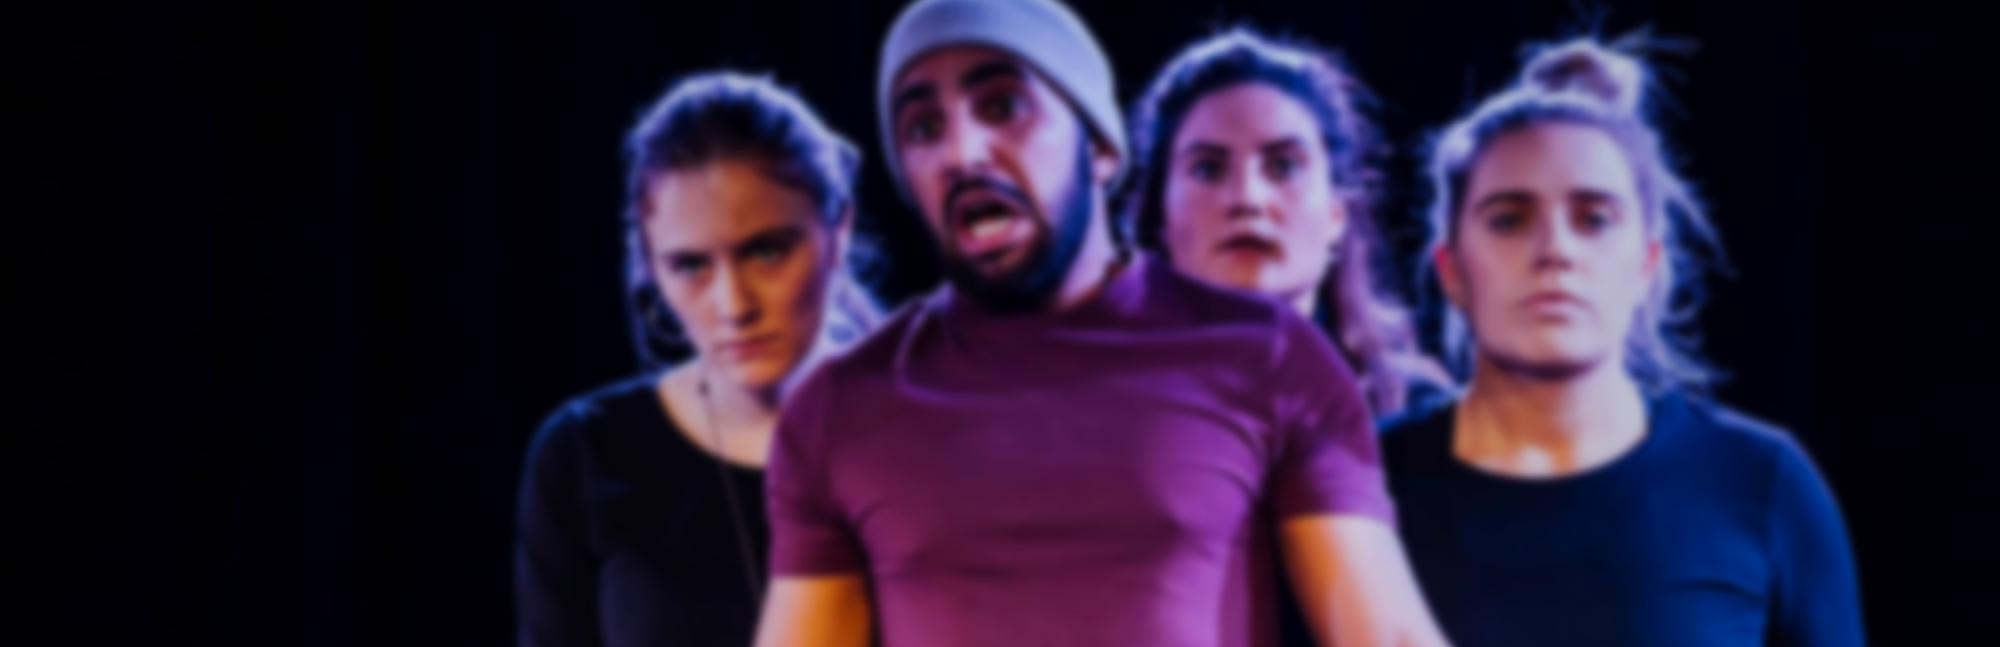 Screen Acting - Creative Community Project